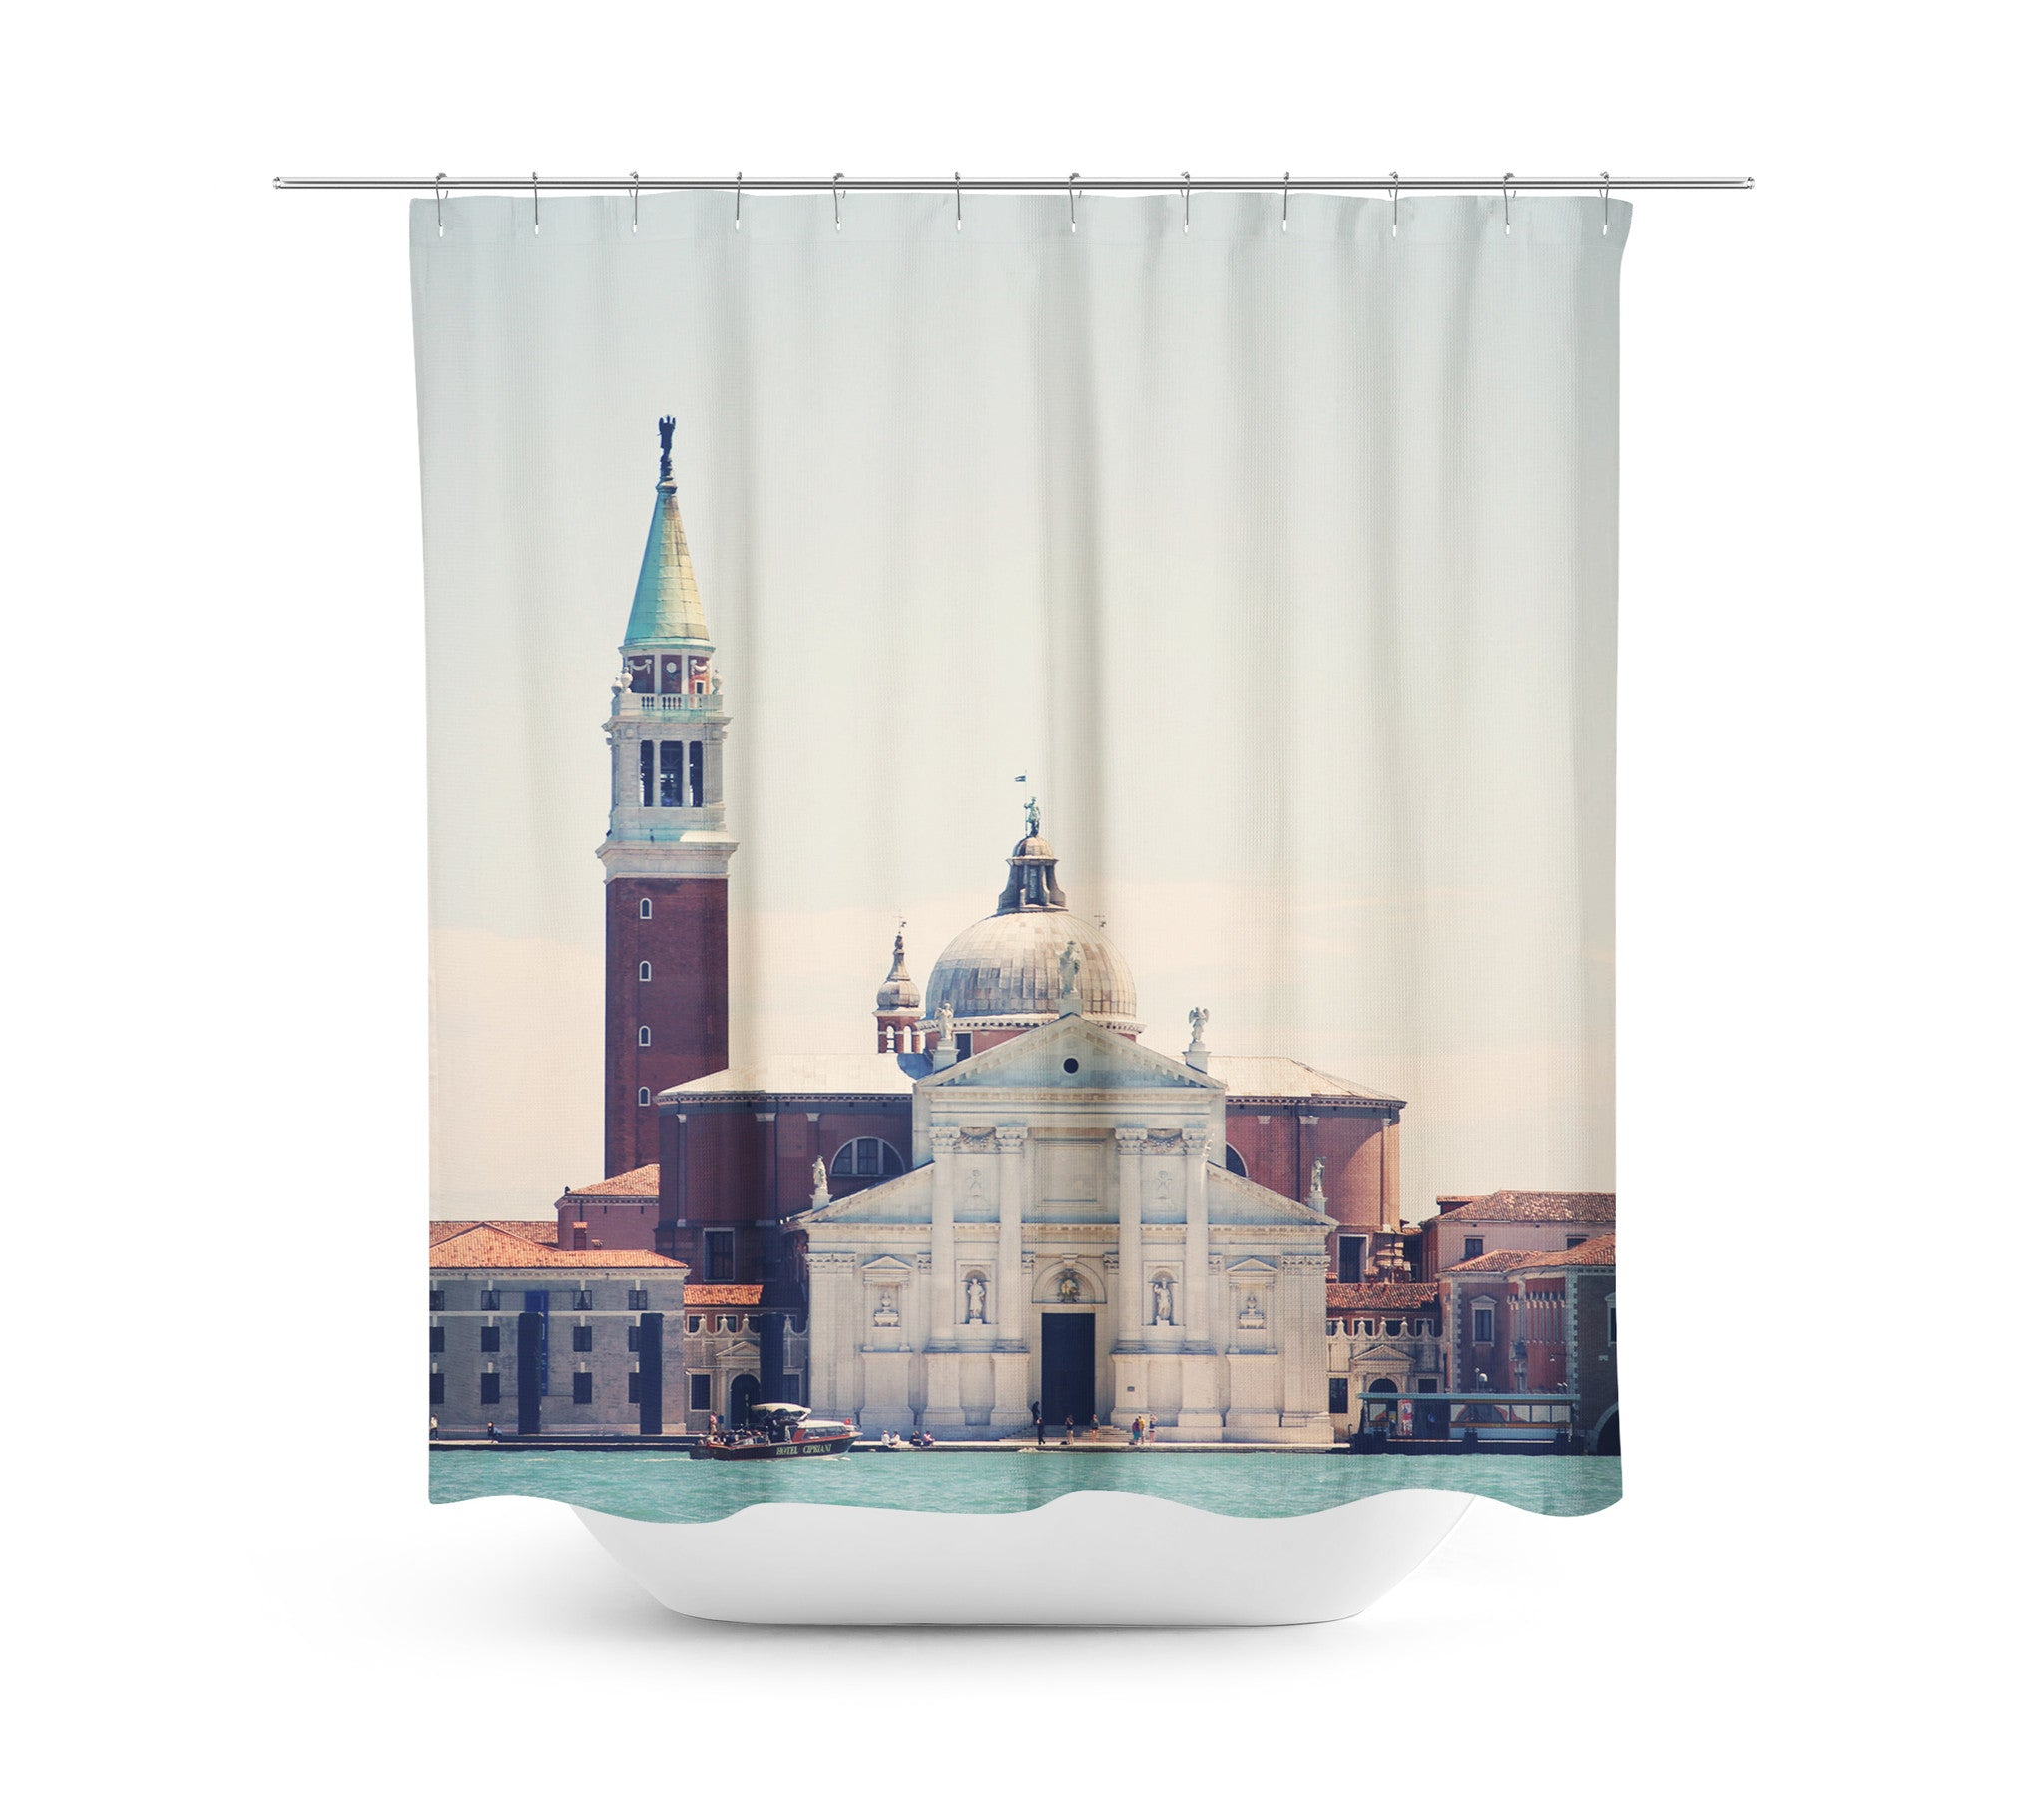 Venice 8 Shower Curtain - Sylvia Coomes